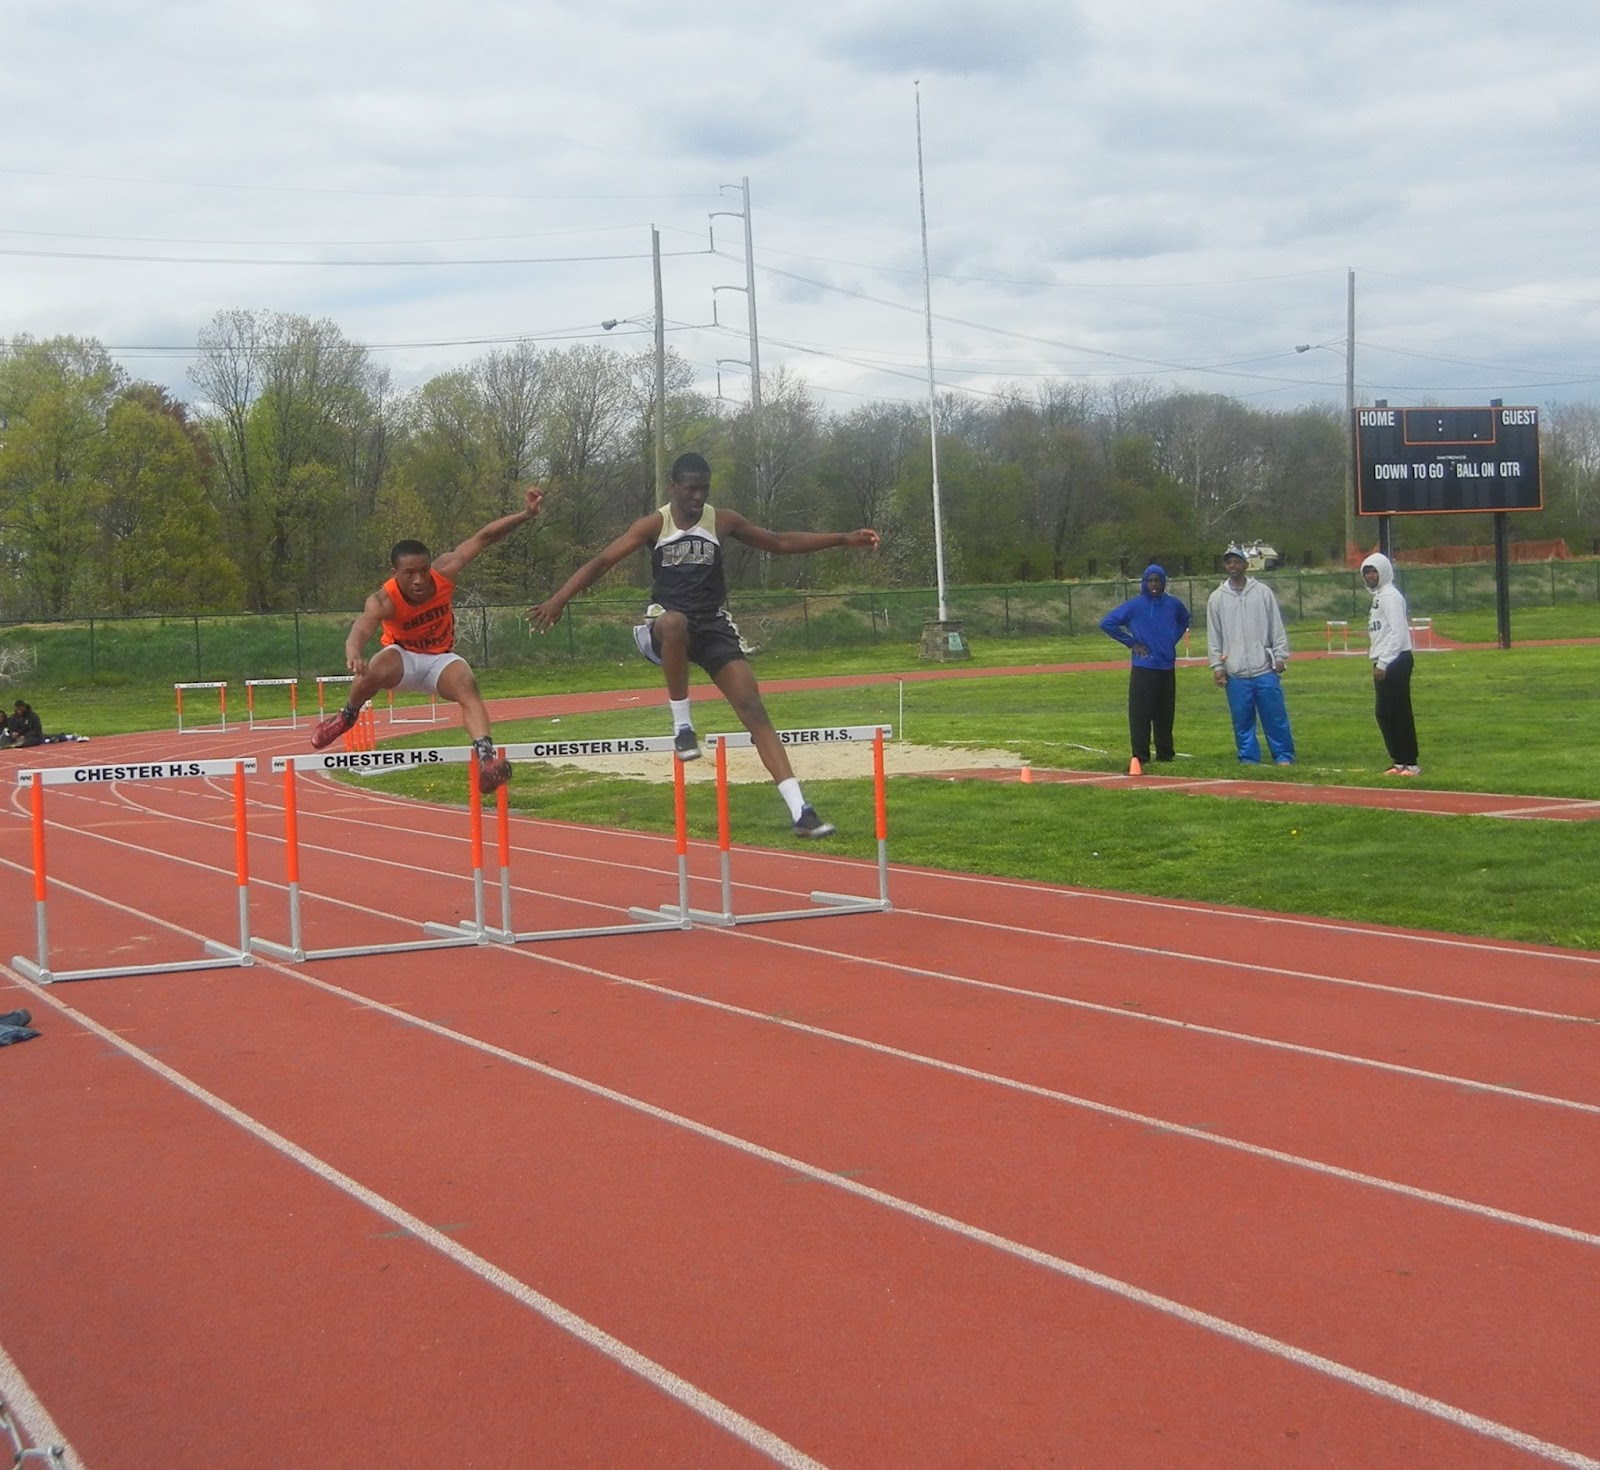 henderson west chester track meet 6 2 2015